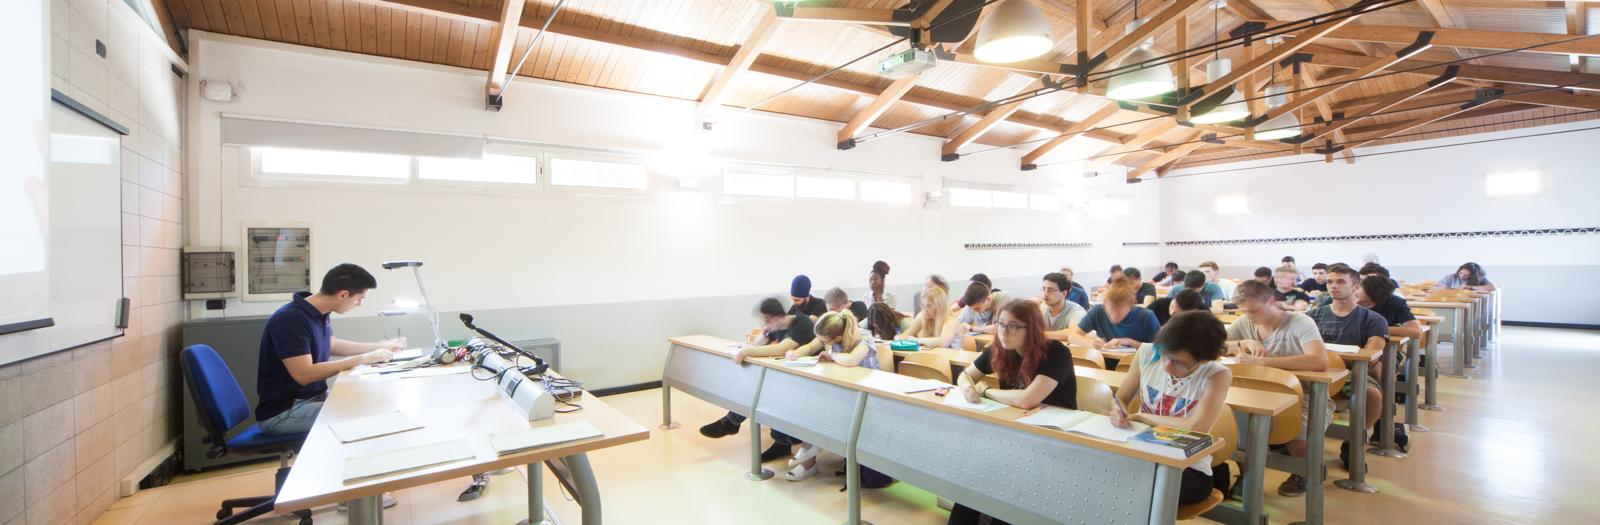 Students attending class in Dalmine